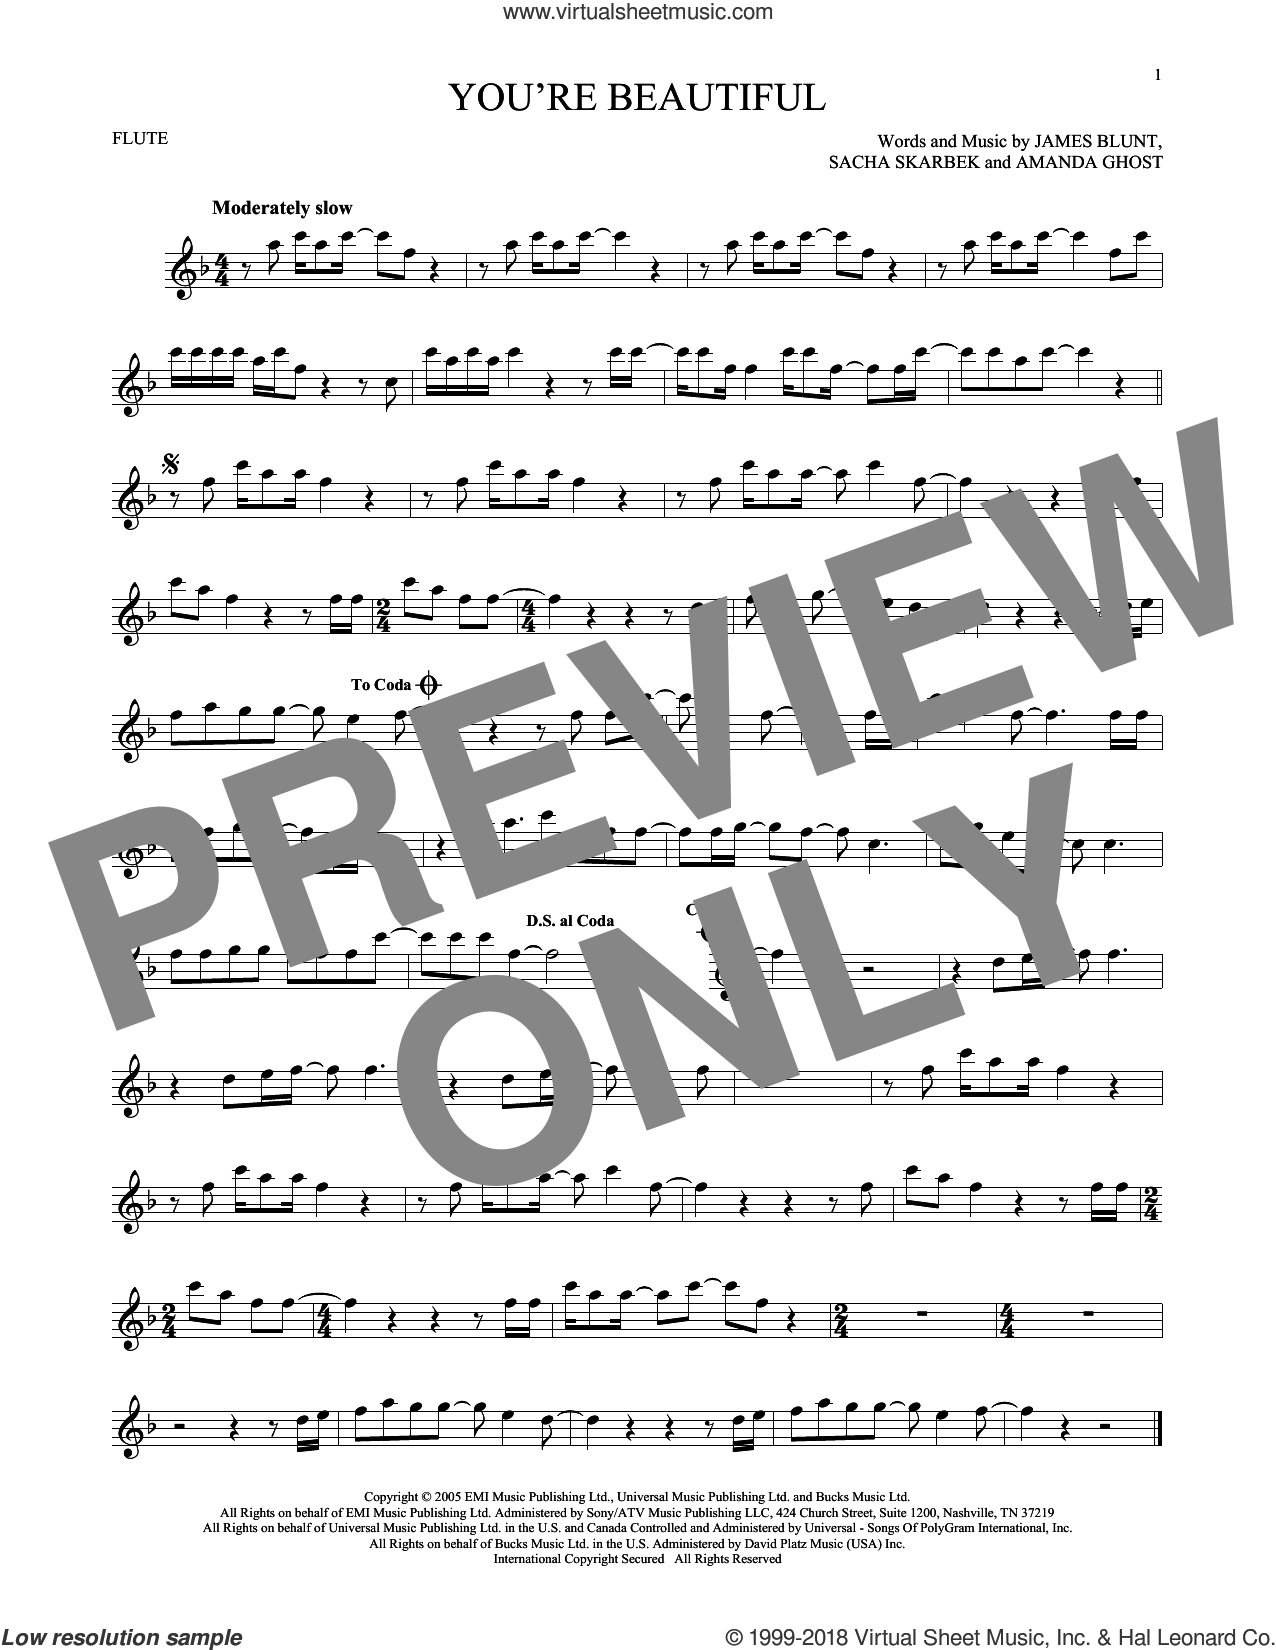 You're Beautiful sheet music for flute solo by Sacha Skarbek